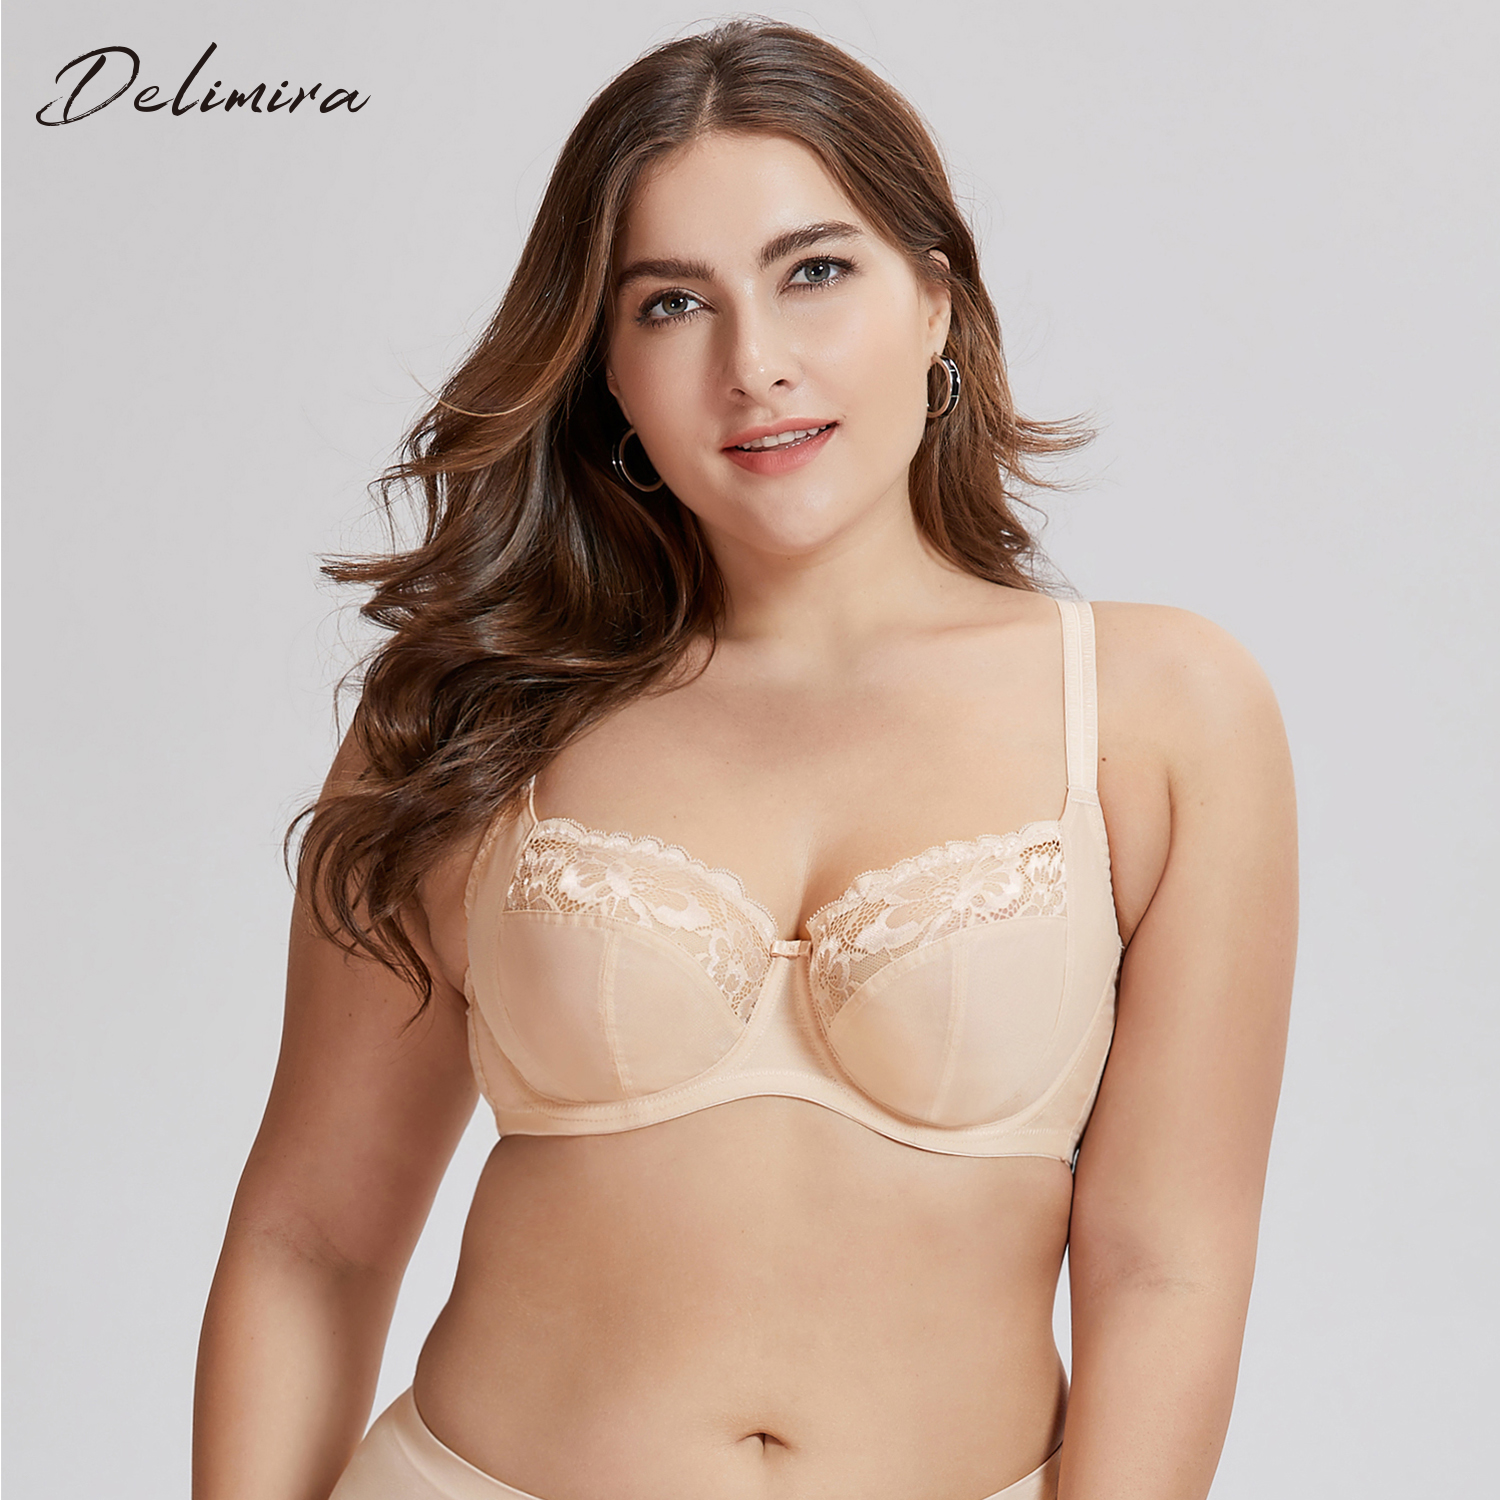 e64cdff89f65e Detail Feedback Questions about DELIMIRA Women s Non Padded Full Coverage  Floral Underwire Lace Balconette Bra Plus Size on Aliexpress.com